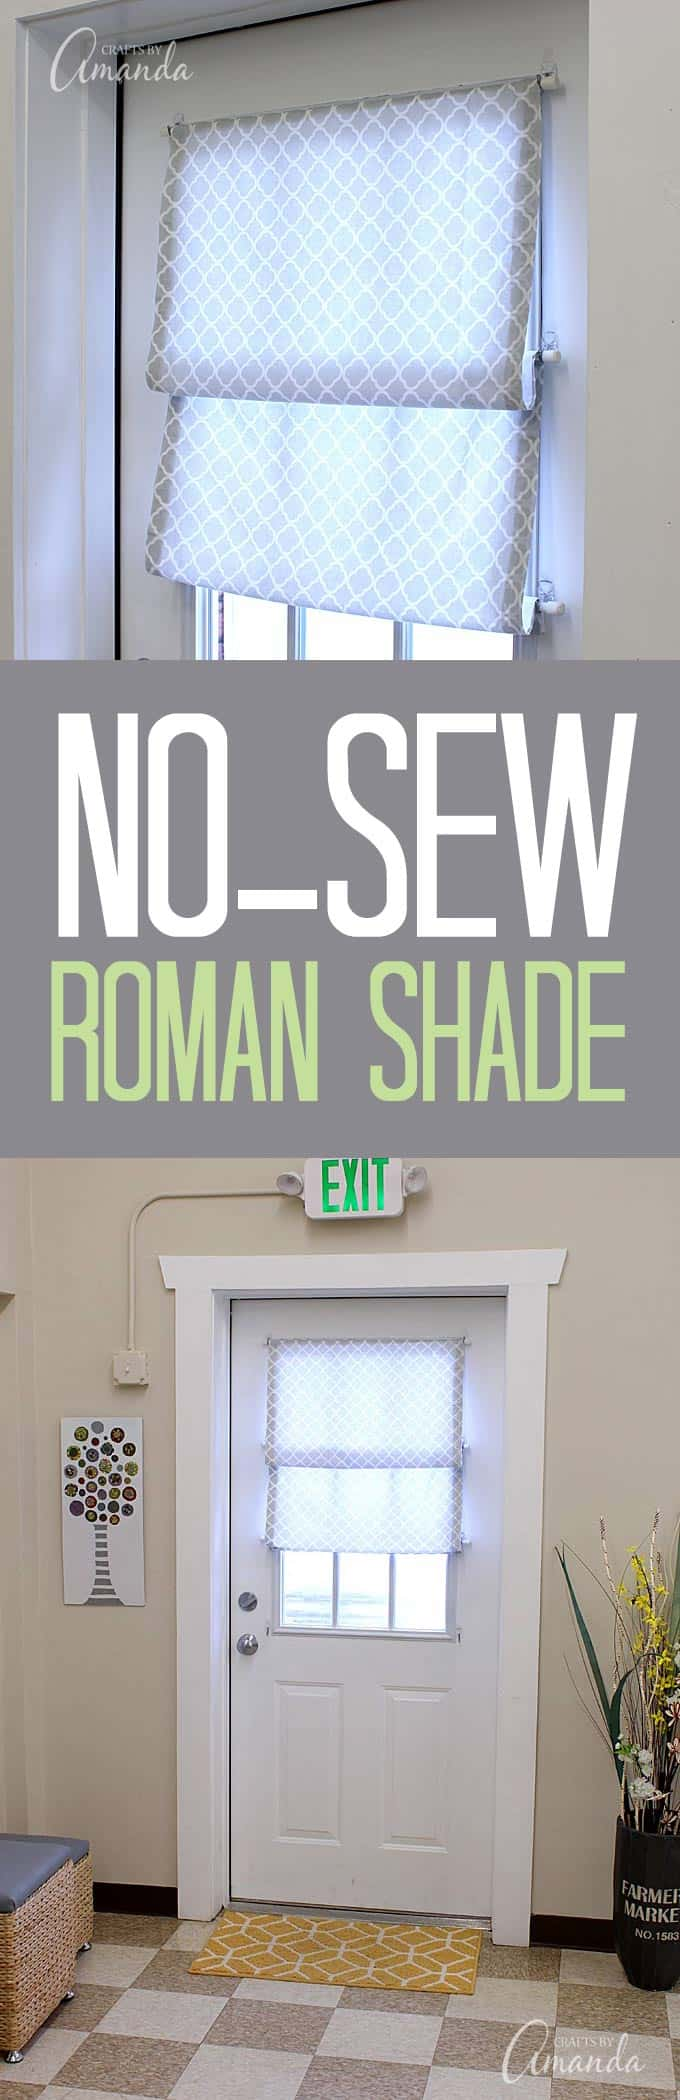 No Sew Roman Shade For Those Who Don't Sew